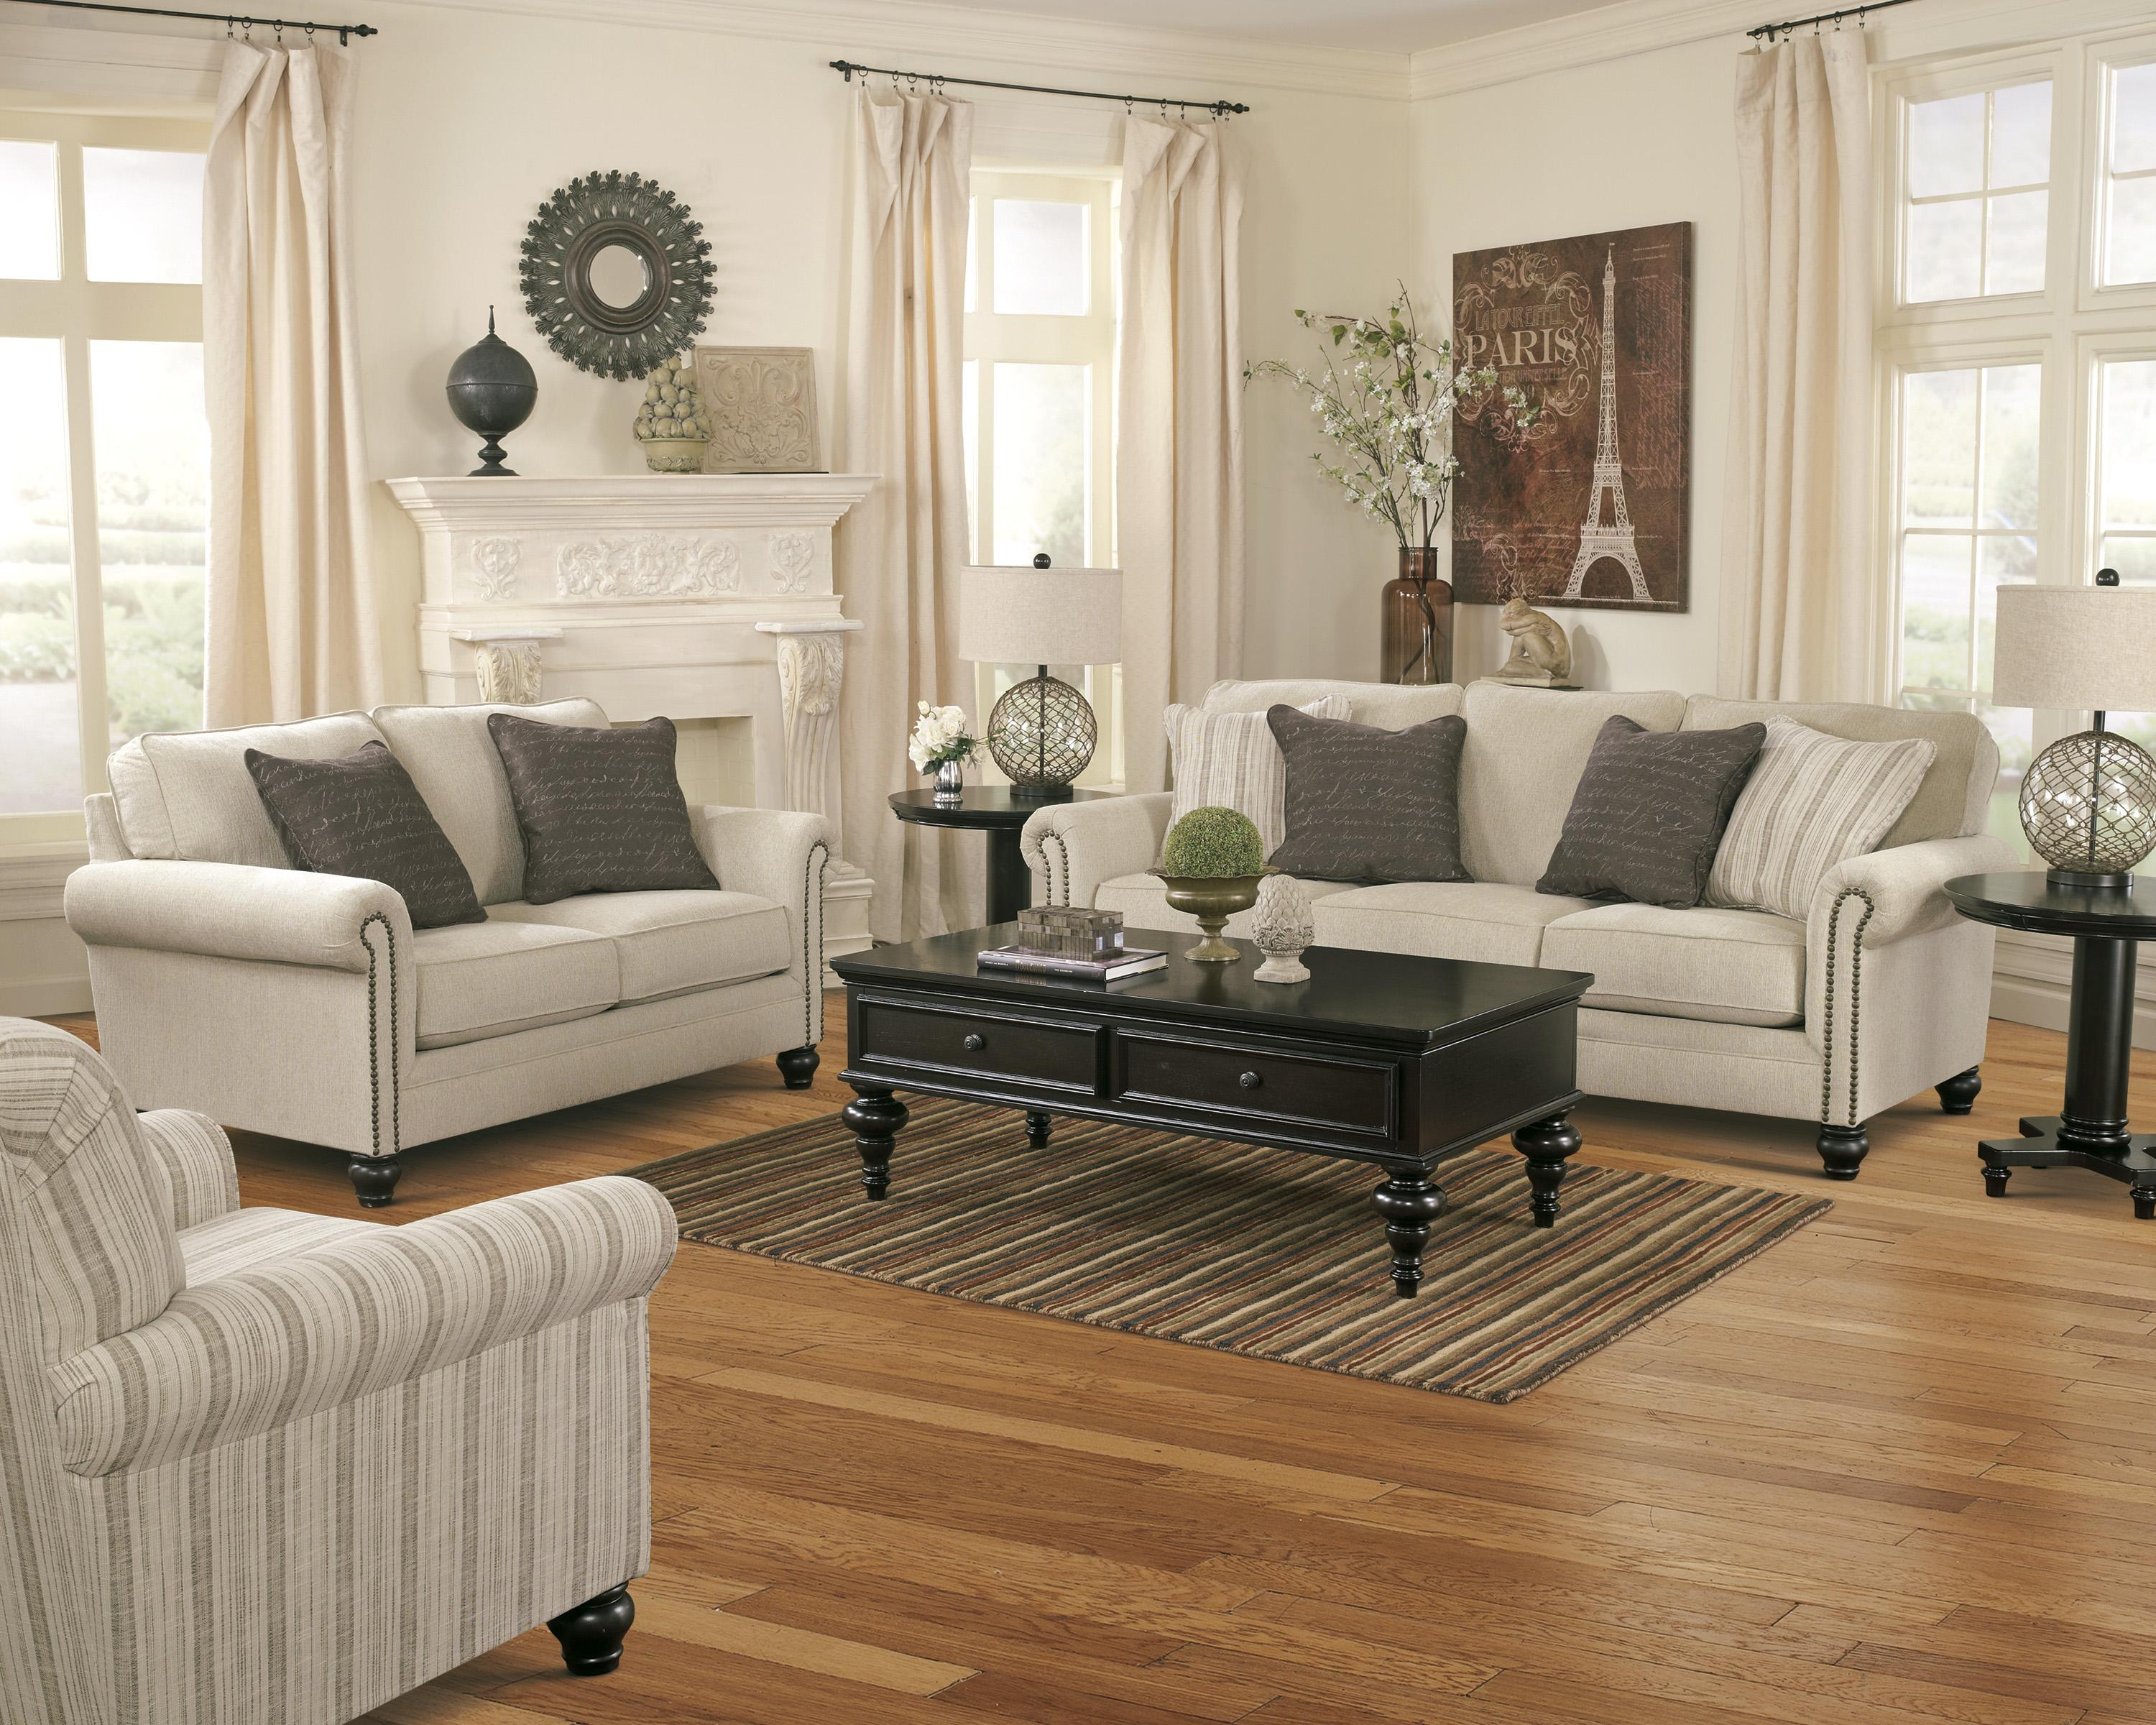 Stationary Living Room Group By Signature Design By Ashley Wolf And Gardiner Wolf Furniture